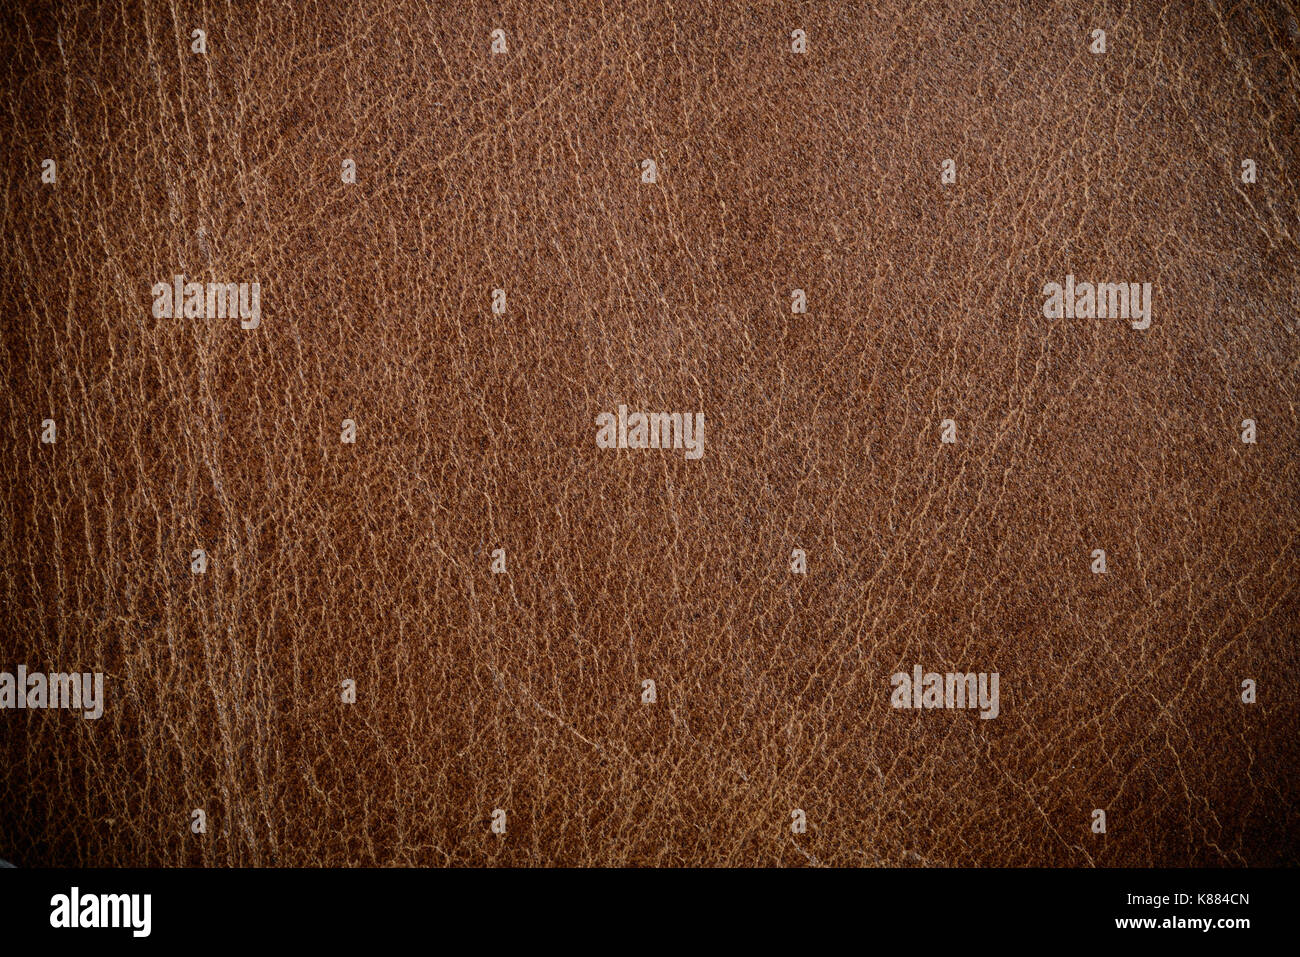 brown leather texture or background for design - Stock Image